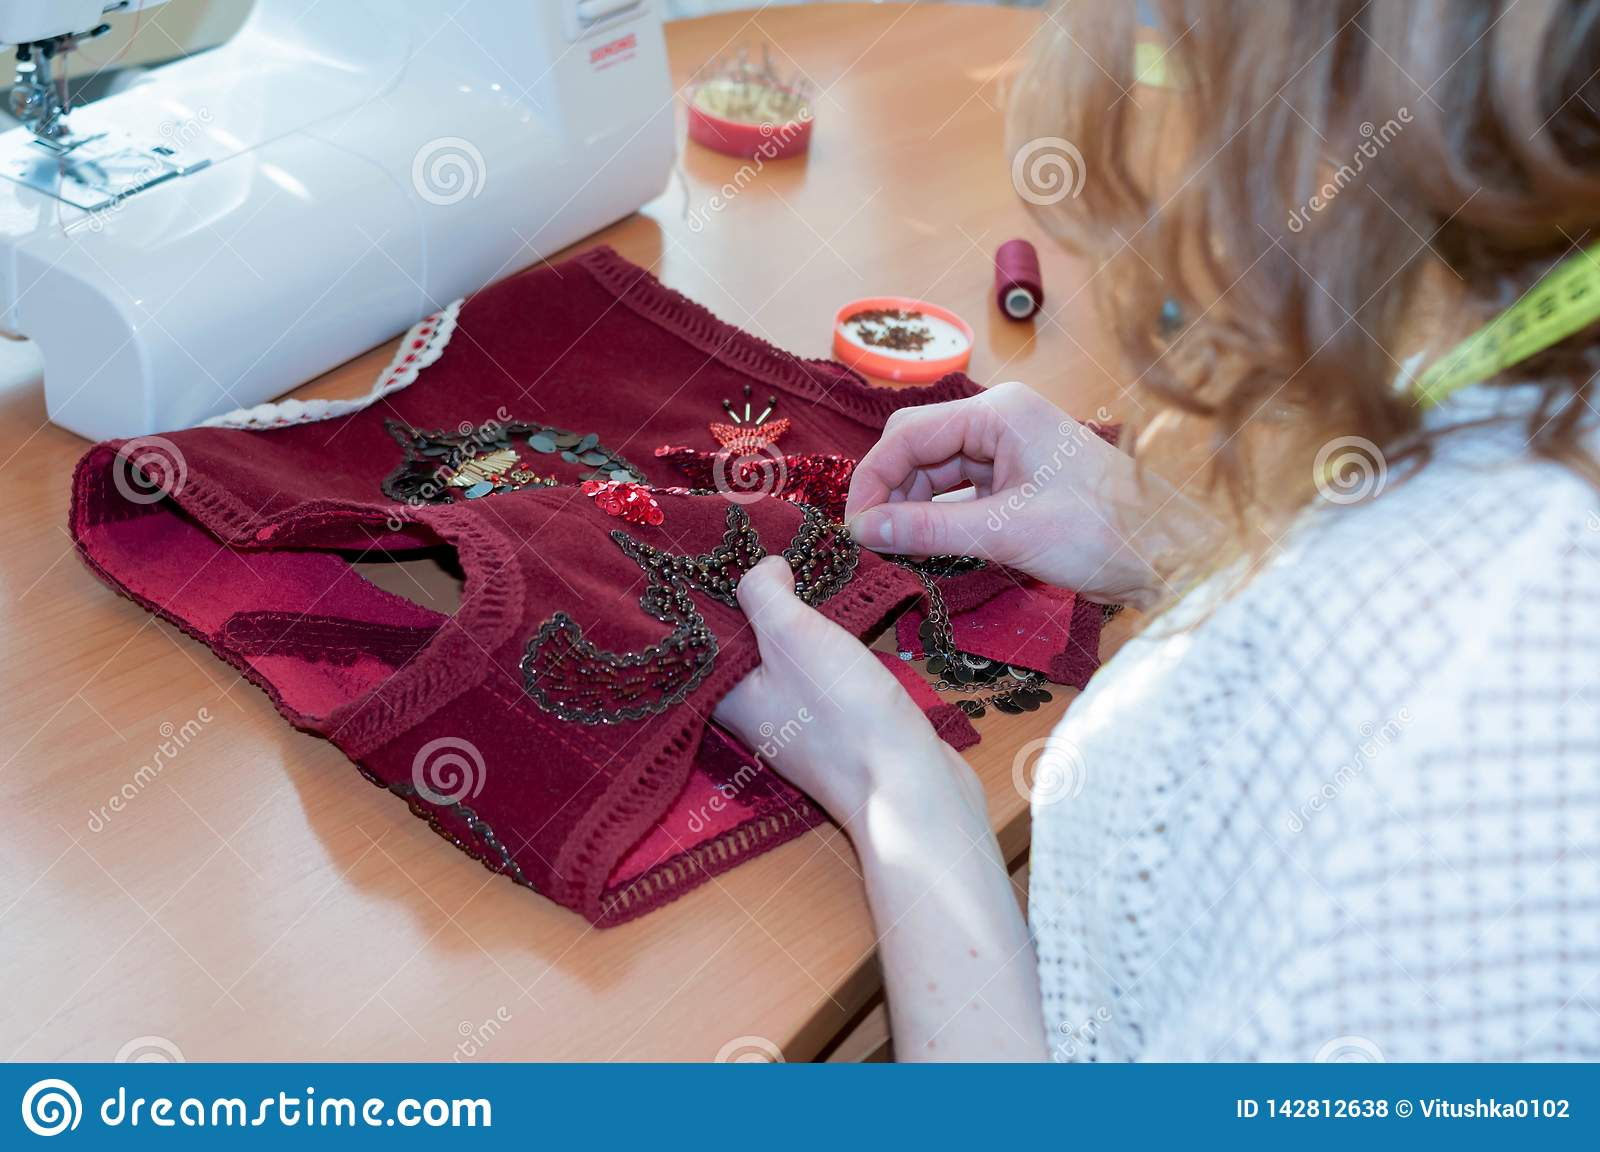 Seamstress sitting at table with sewing machine and embroiders red vest in studio